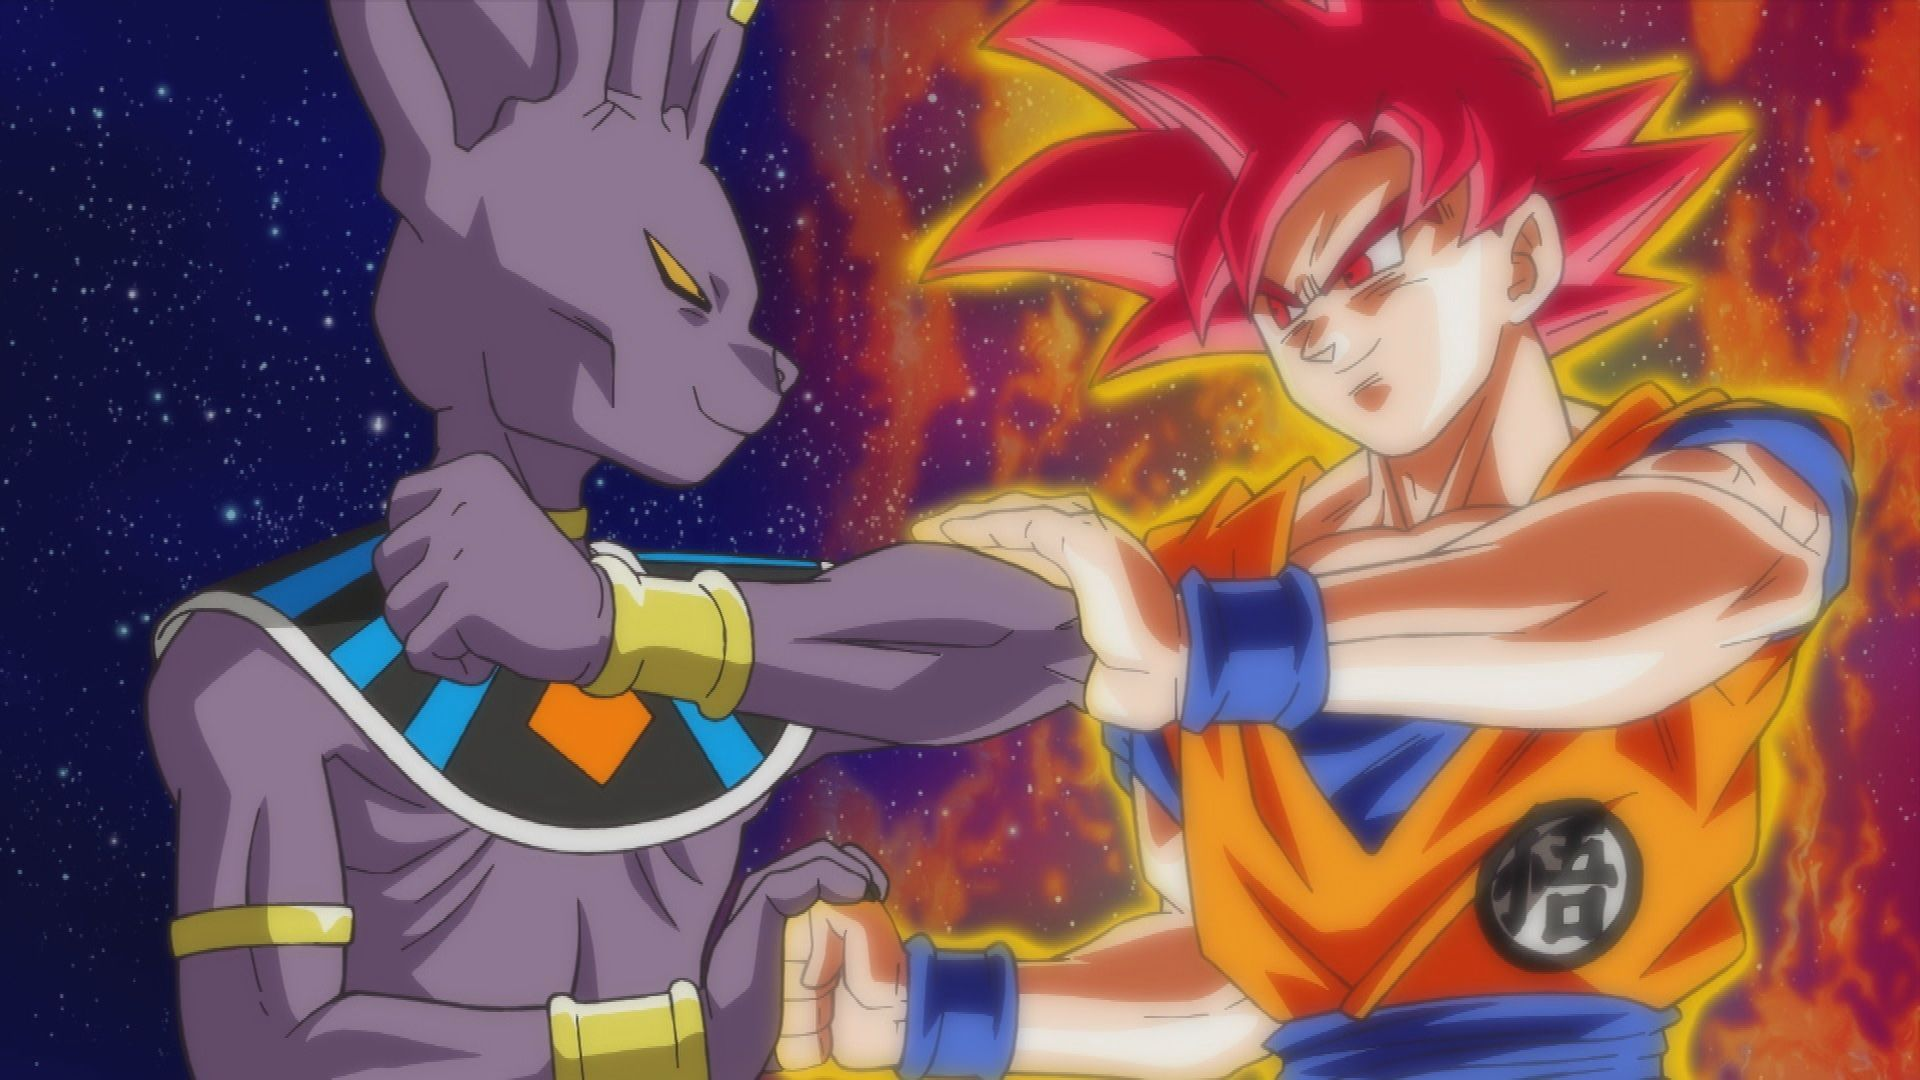 Dragon Ball Z Battle Of Gods Bills Vs Goku Super Saiyan